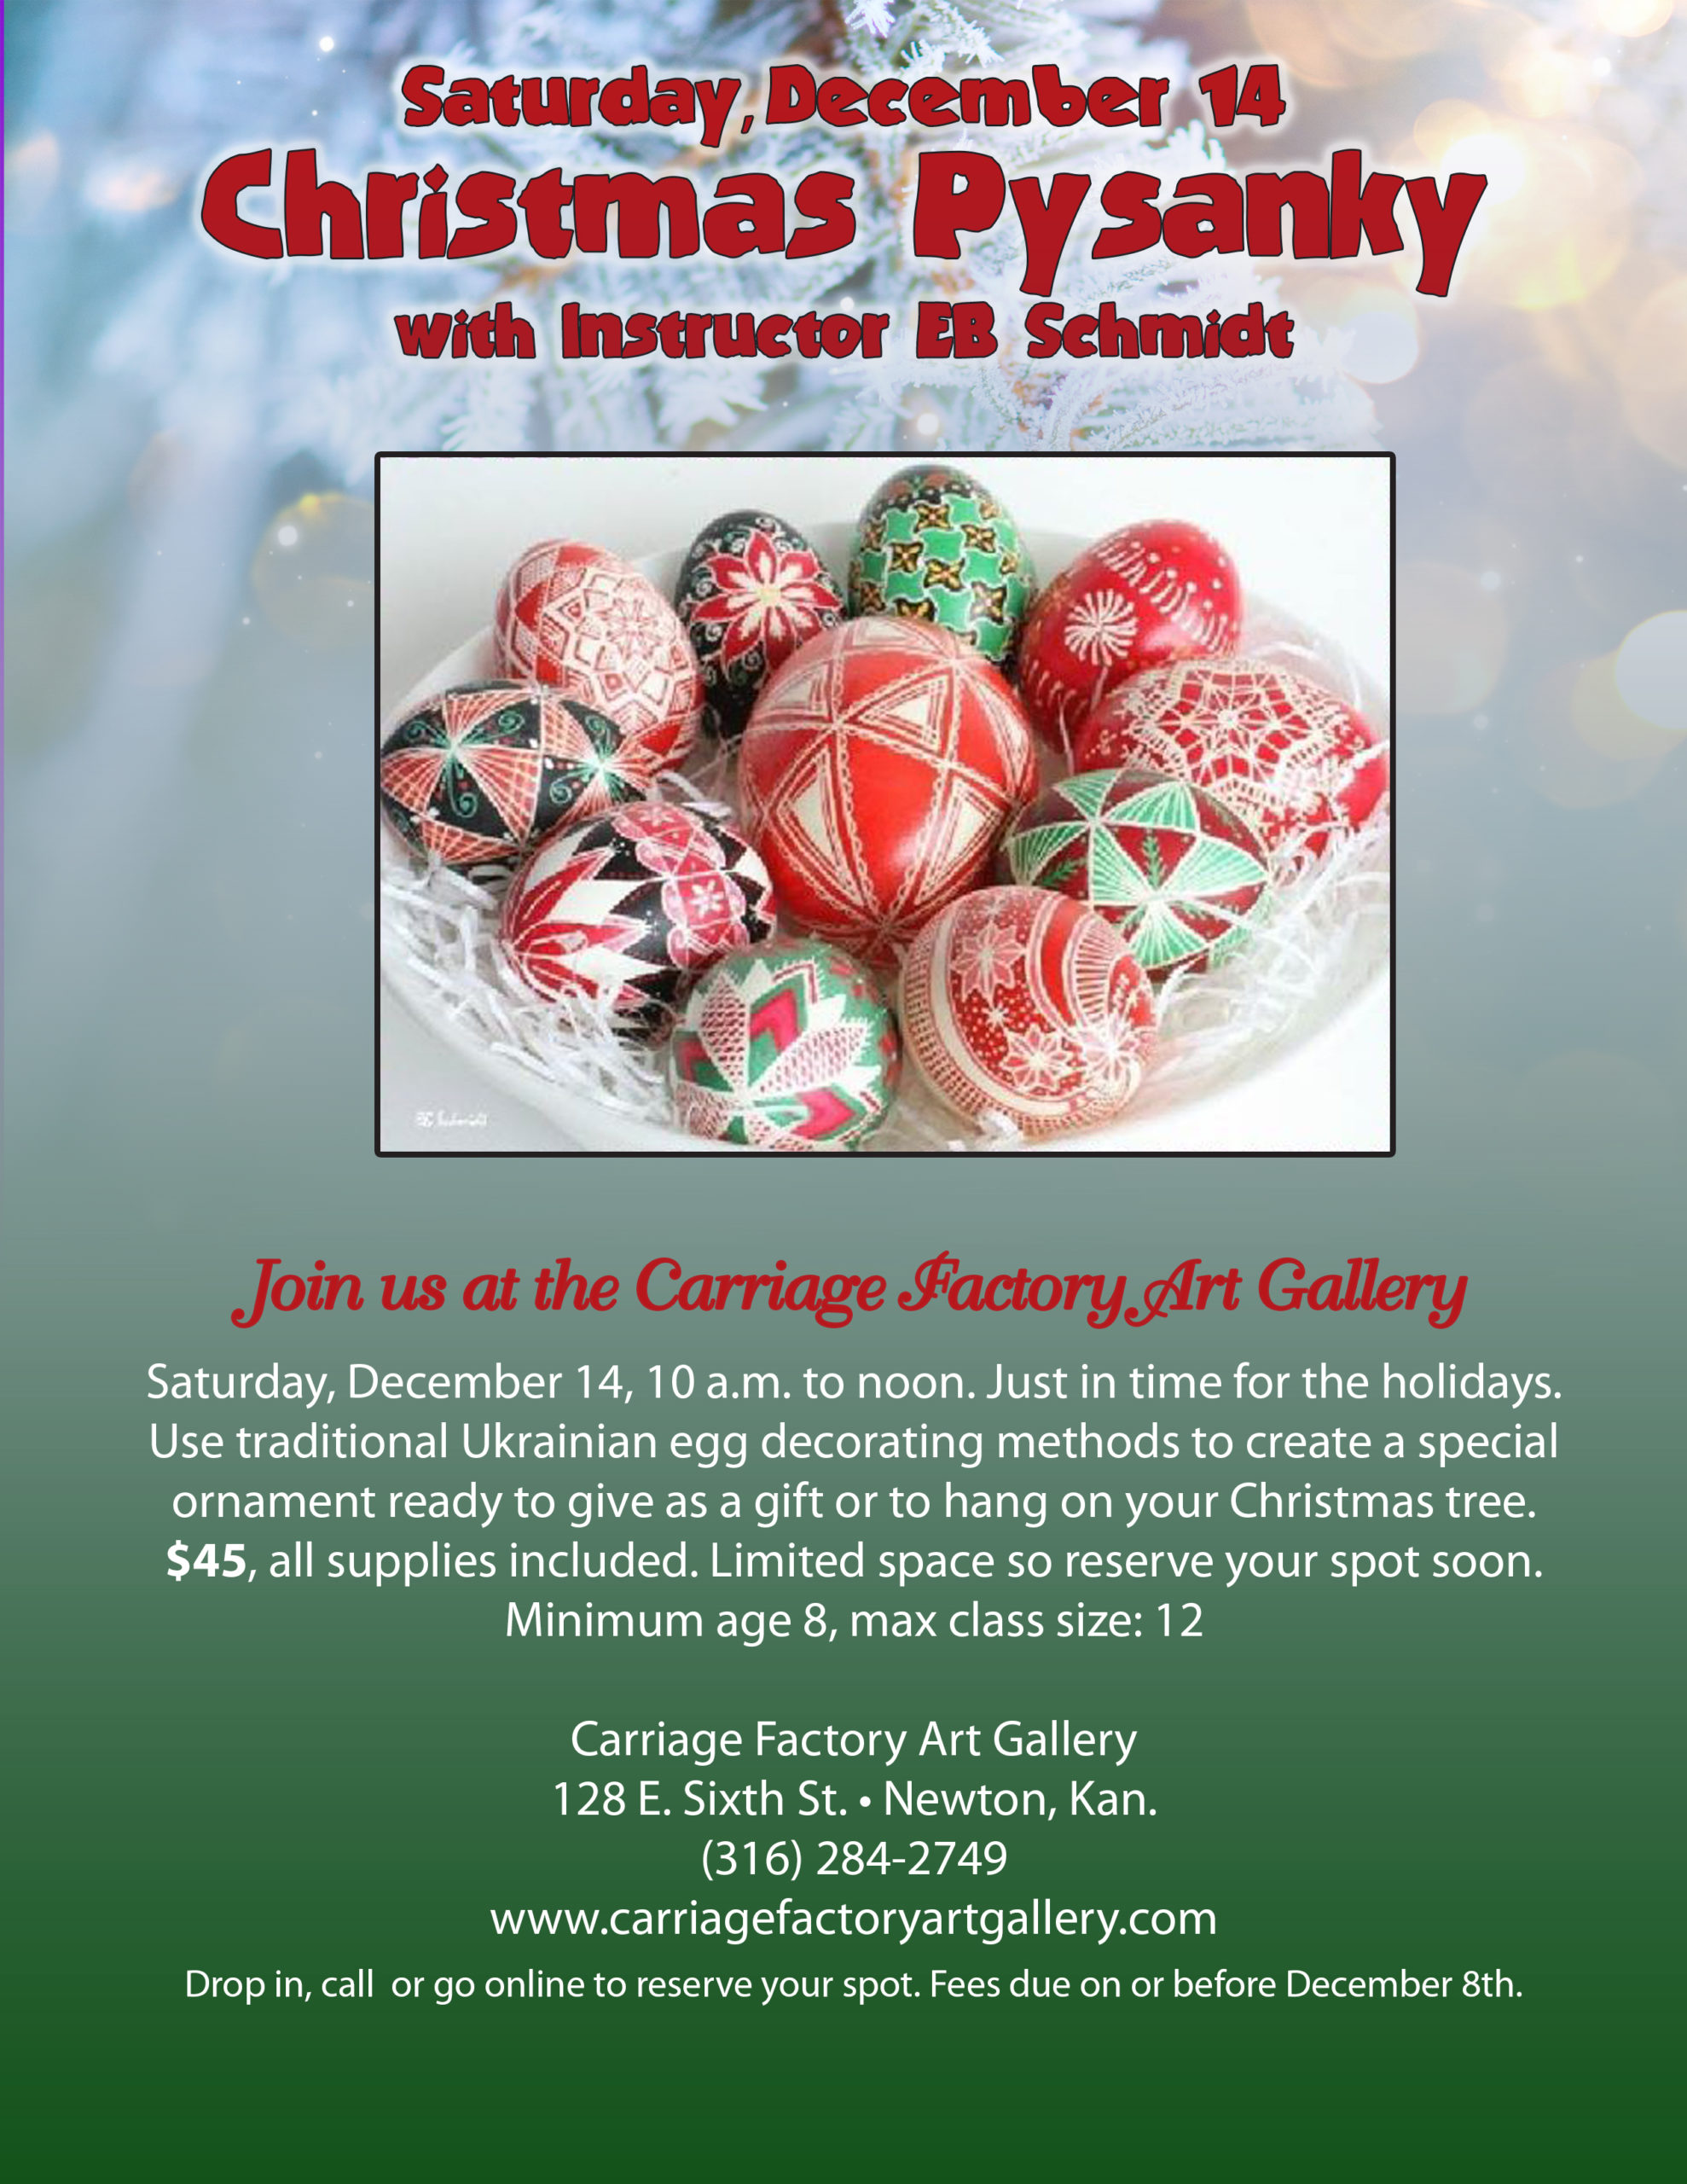 Christmas Pysanky egg decorating class